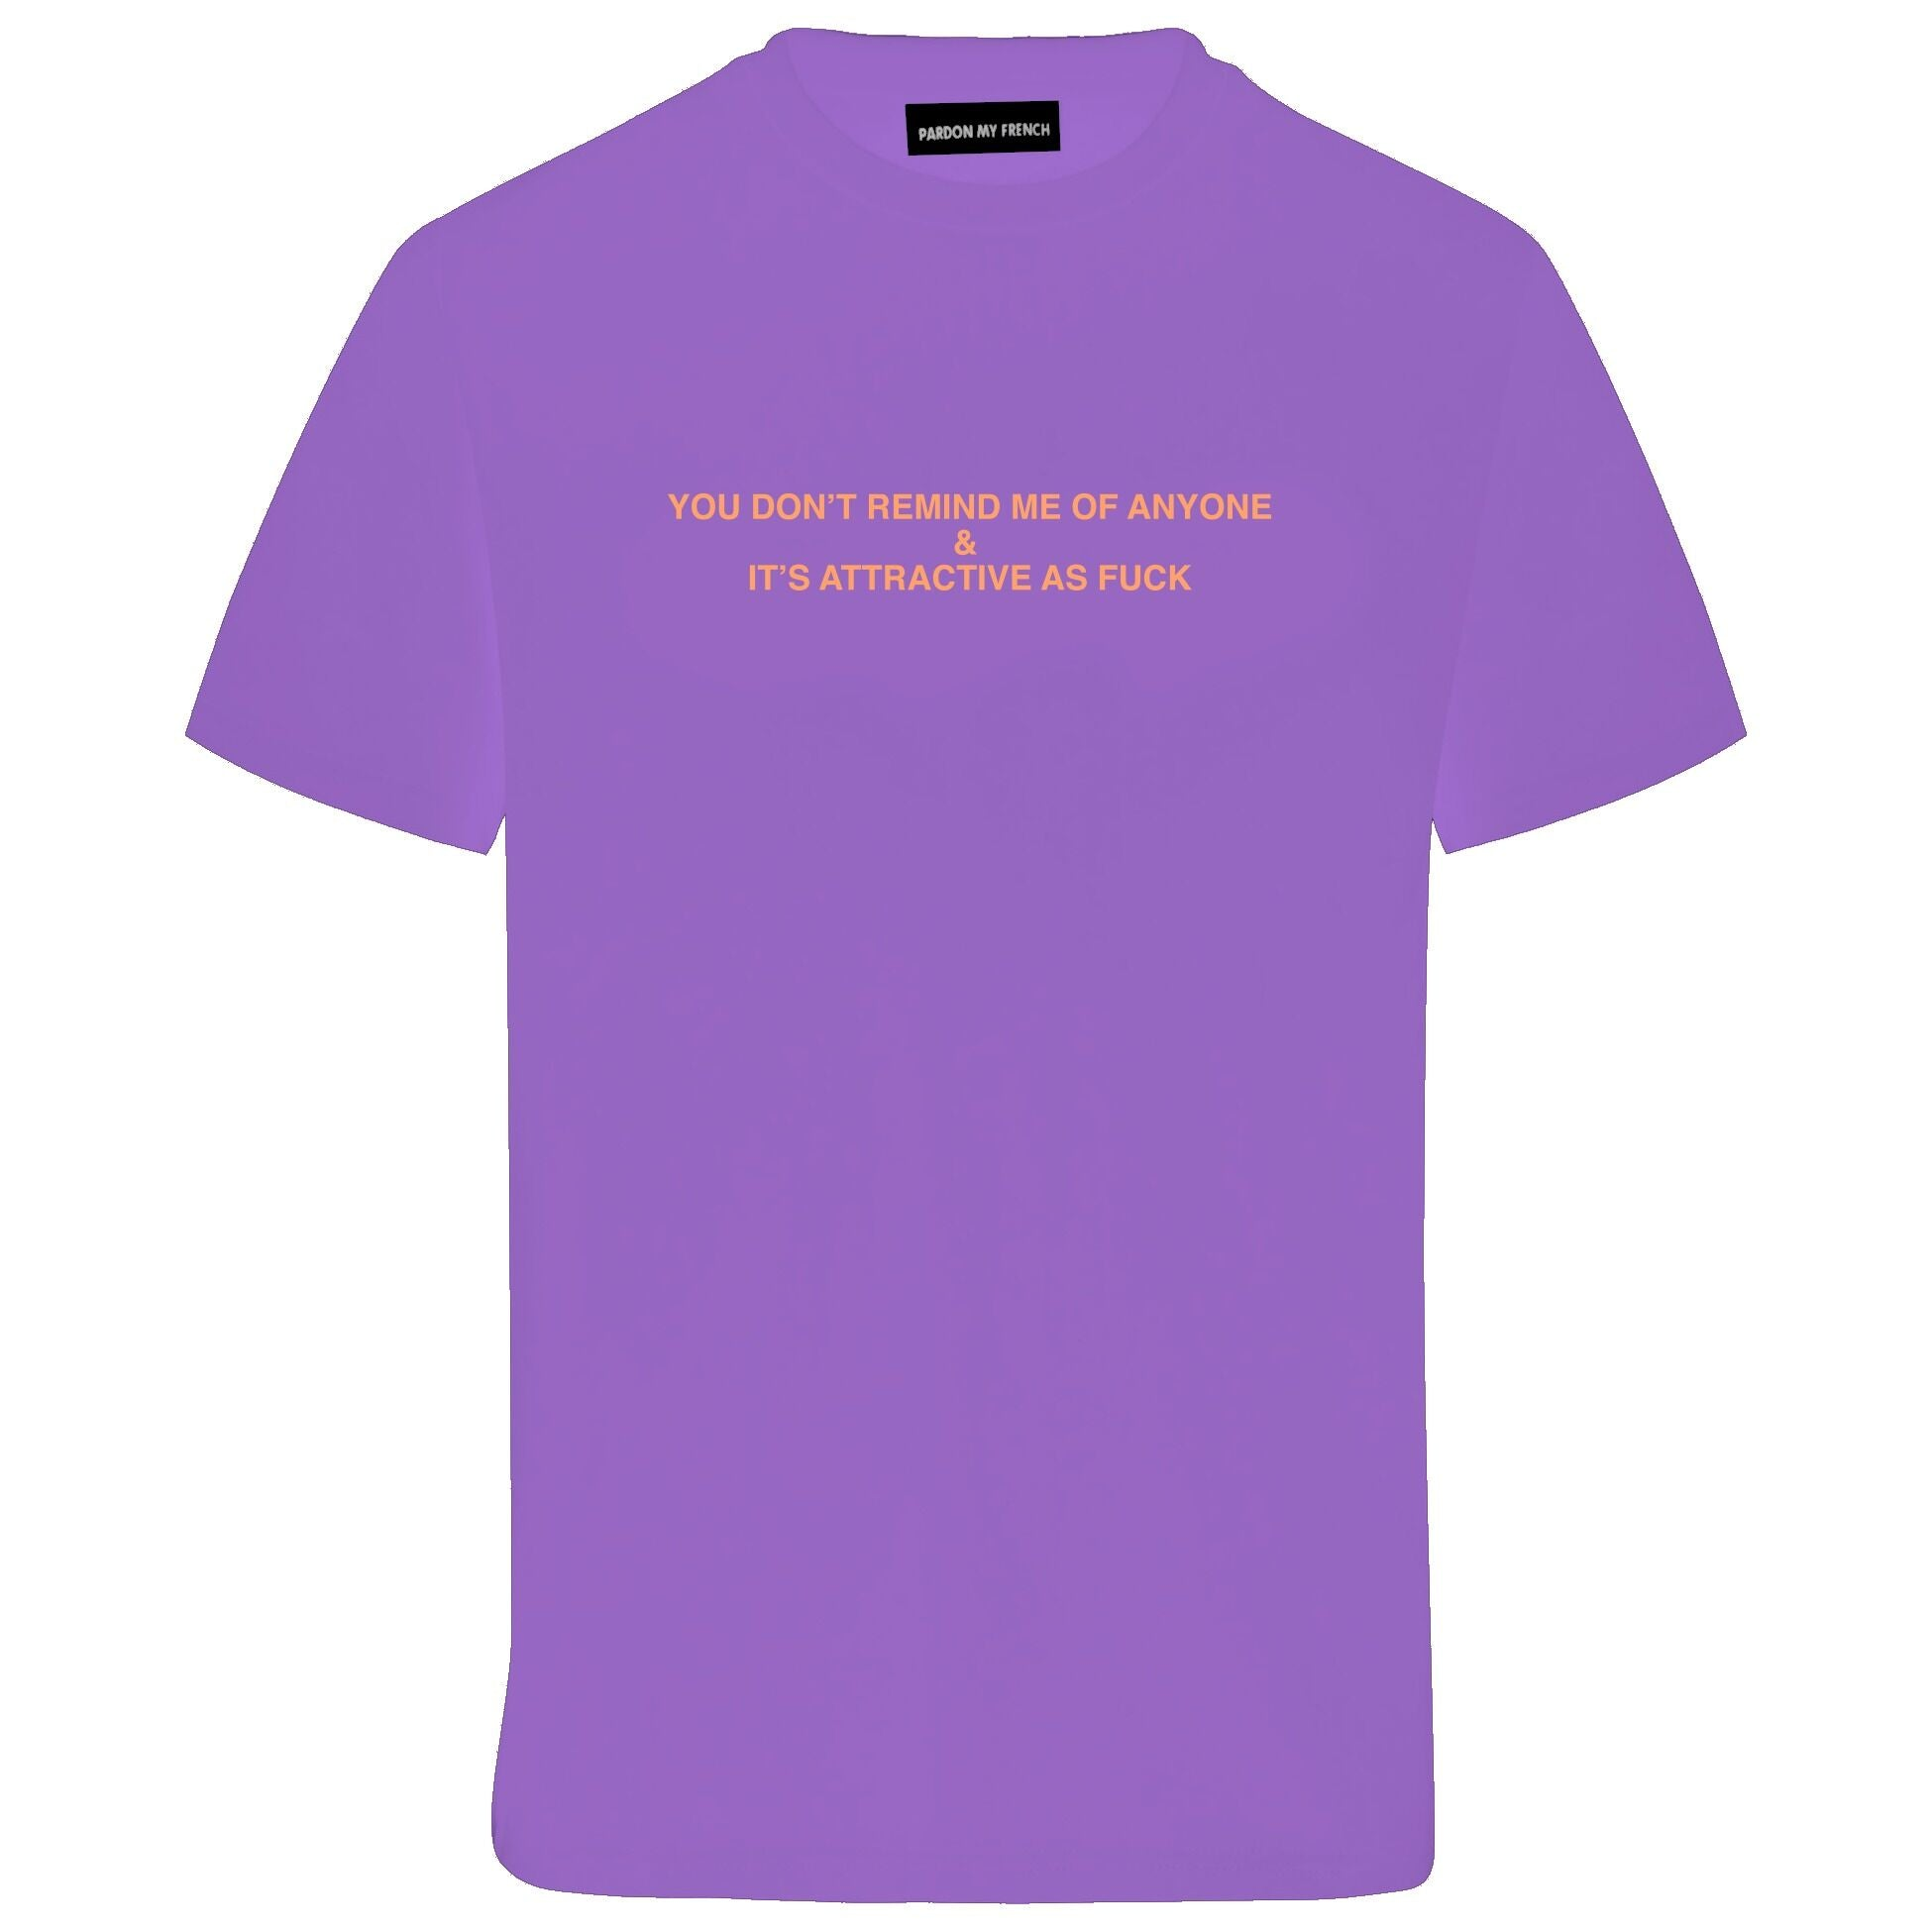 TSHIRT ATTRACTIVE PURPLE PURPLE